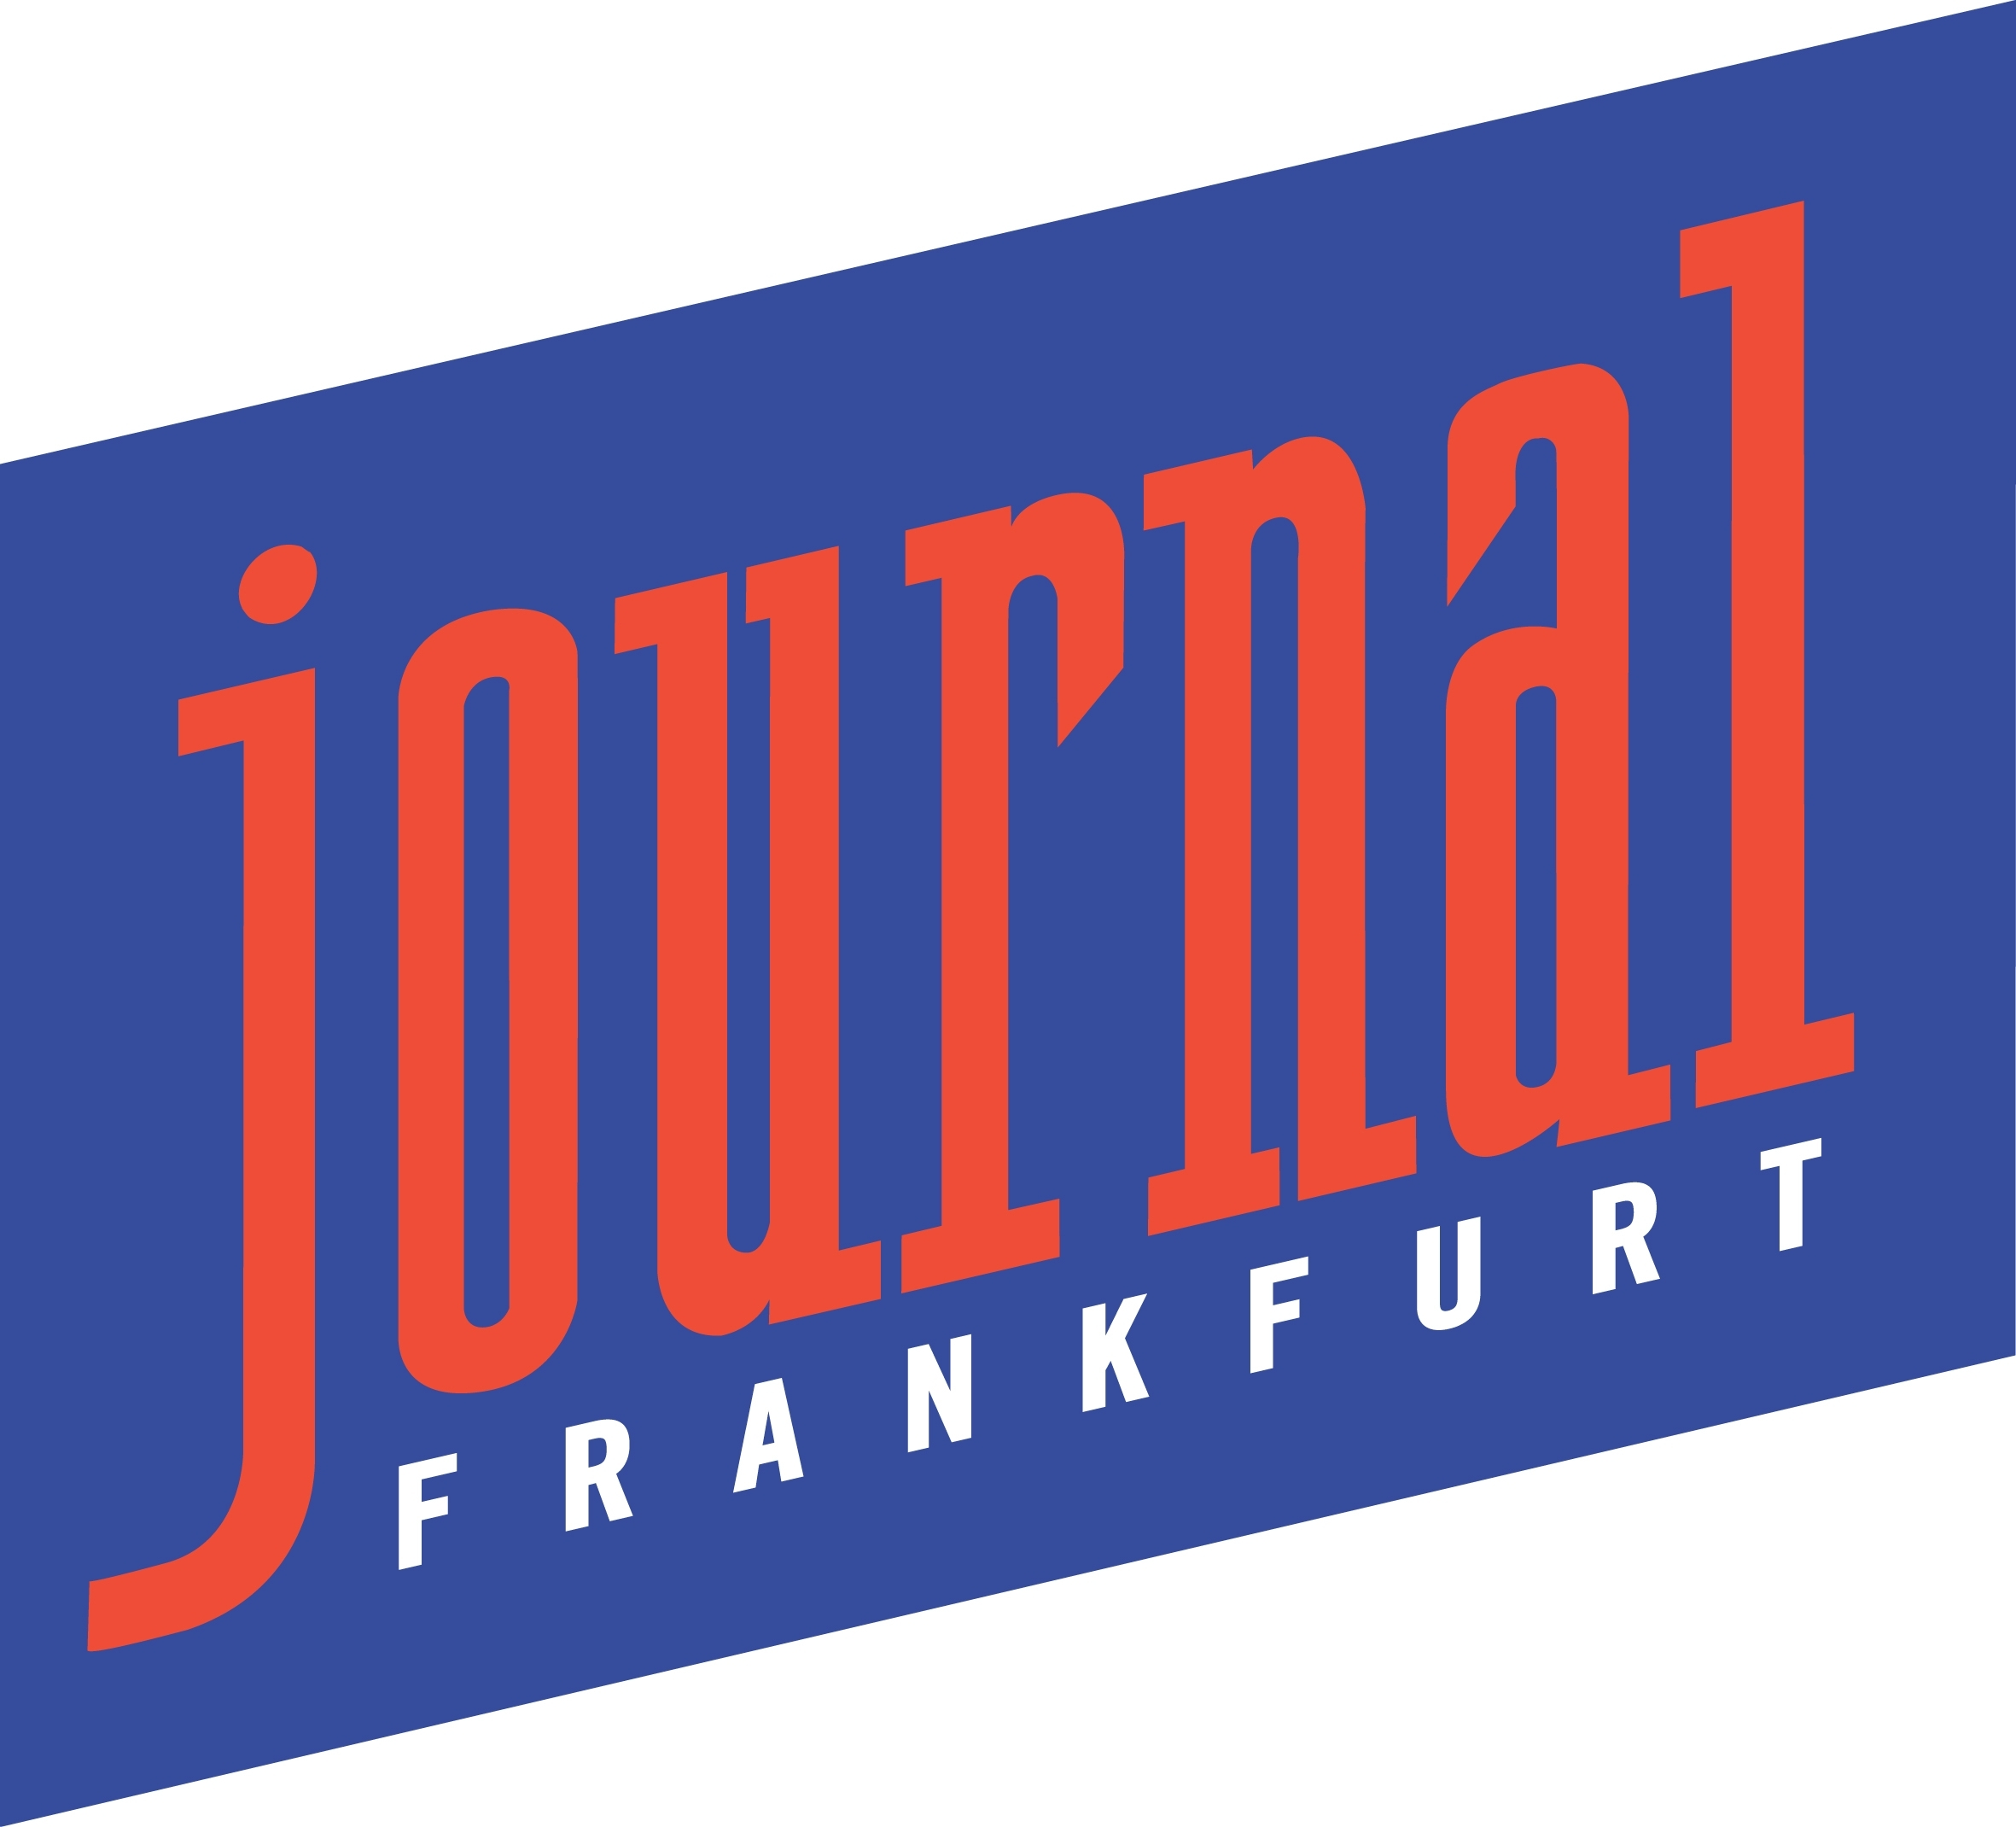 http://www.journal-frankfurt.de/